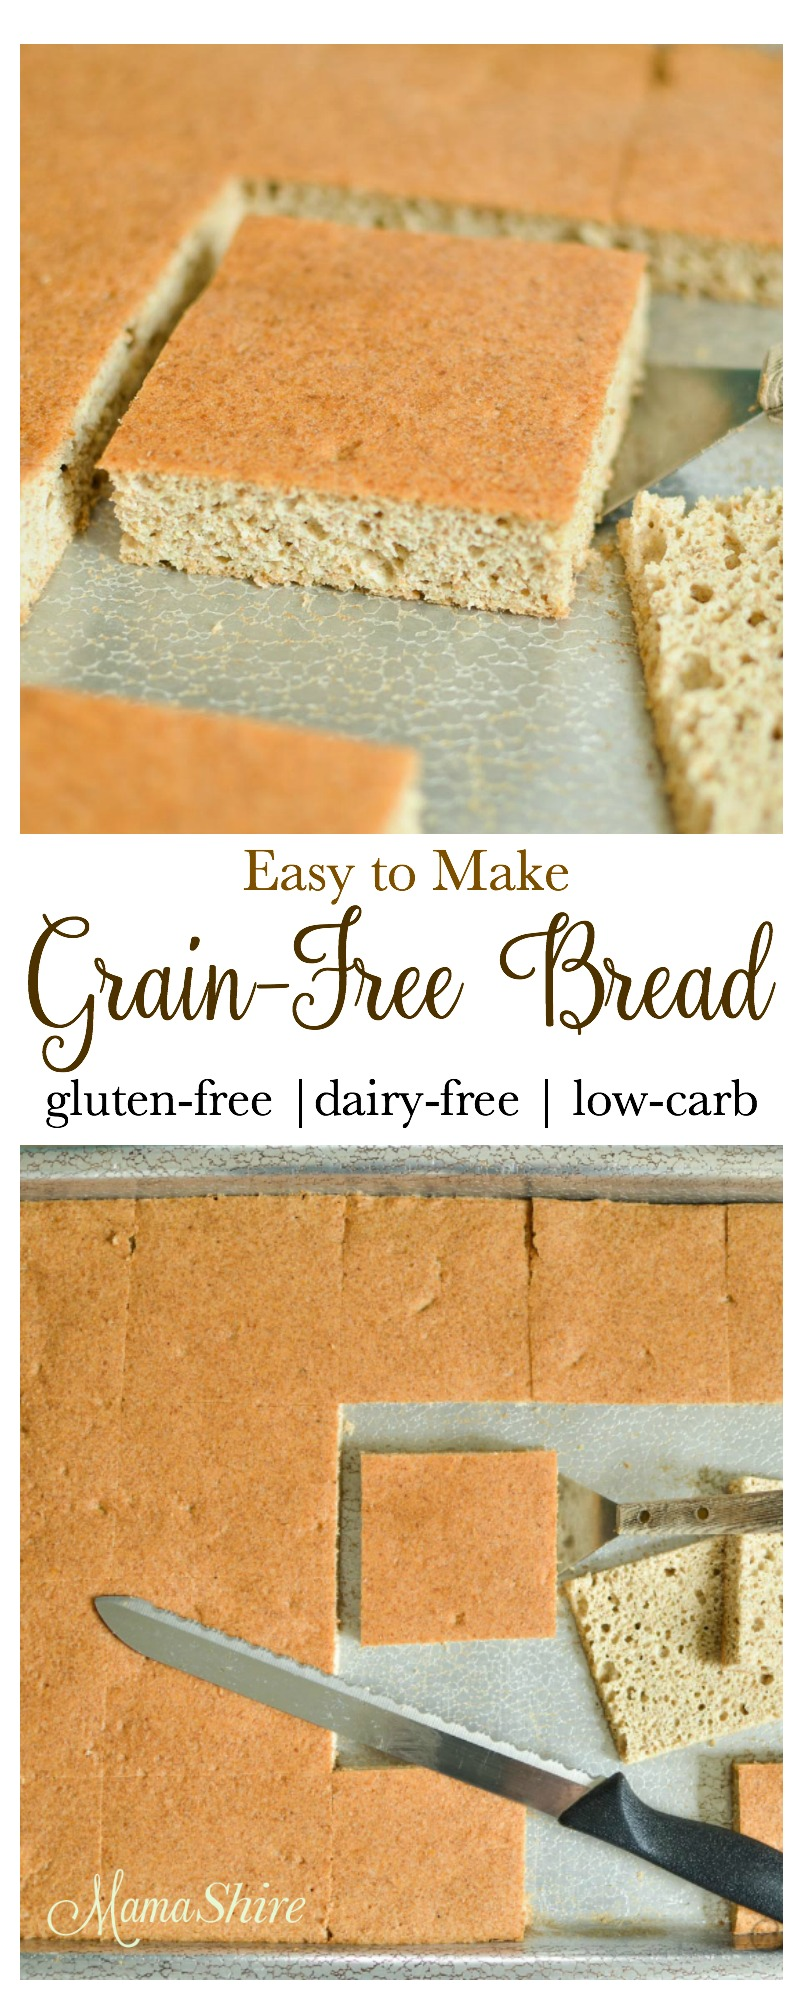 Grain-Free Bread - Gluten-free, Dairy-free, Low-carb, sugar-free